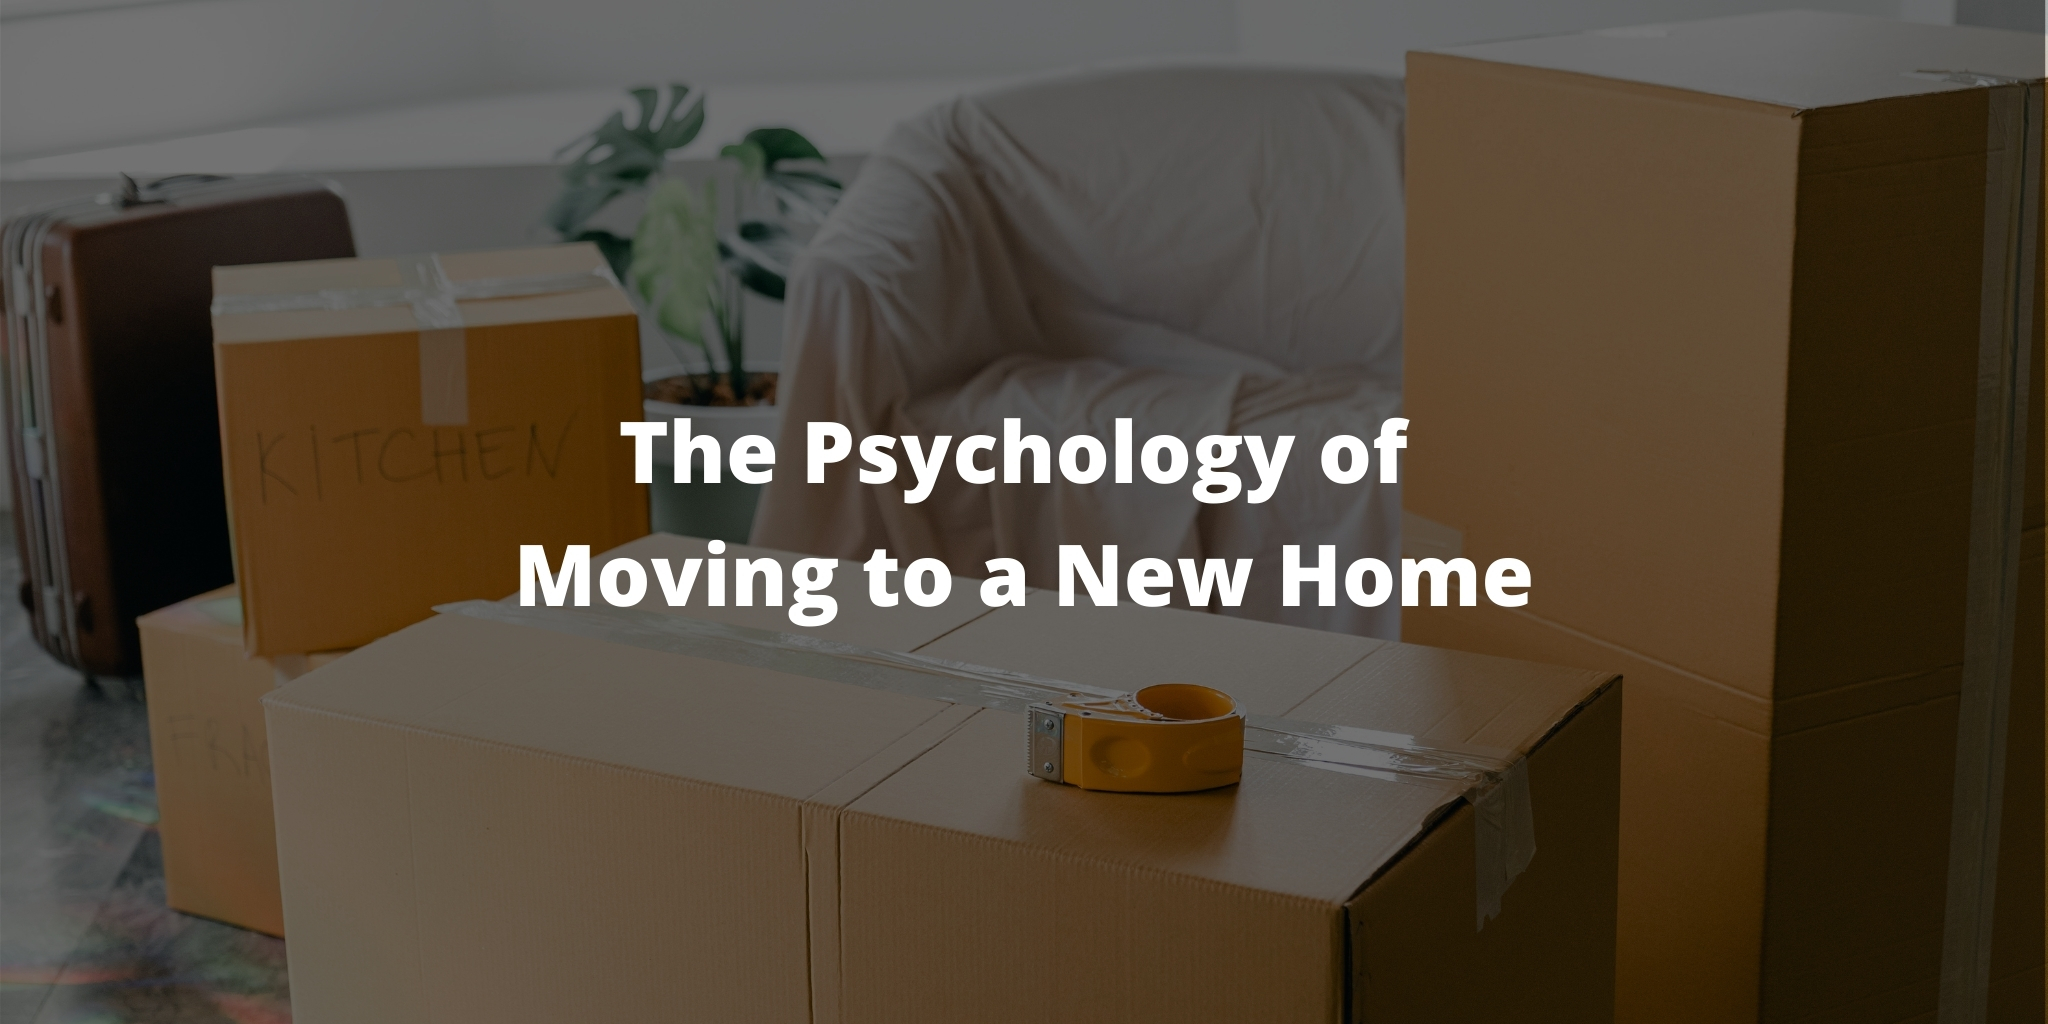 The Psychology of Moving to a New Home